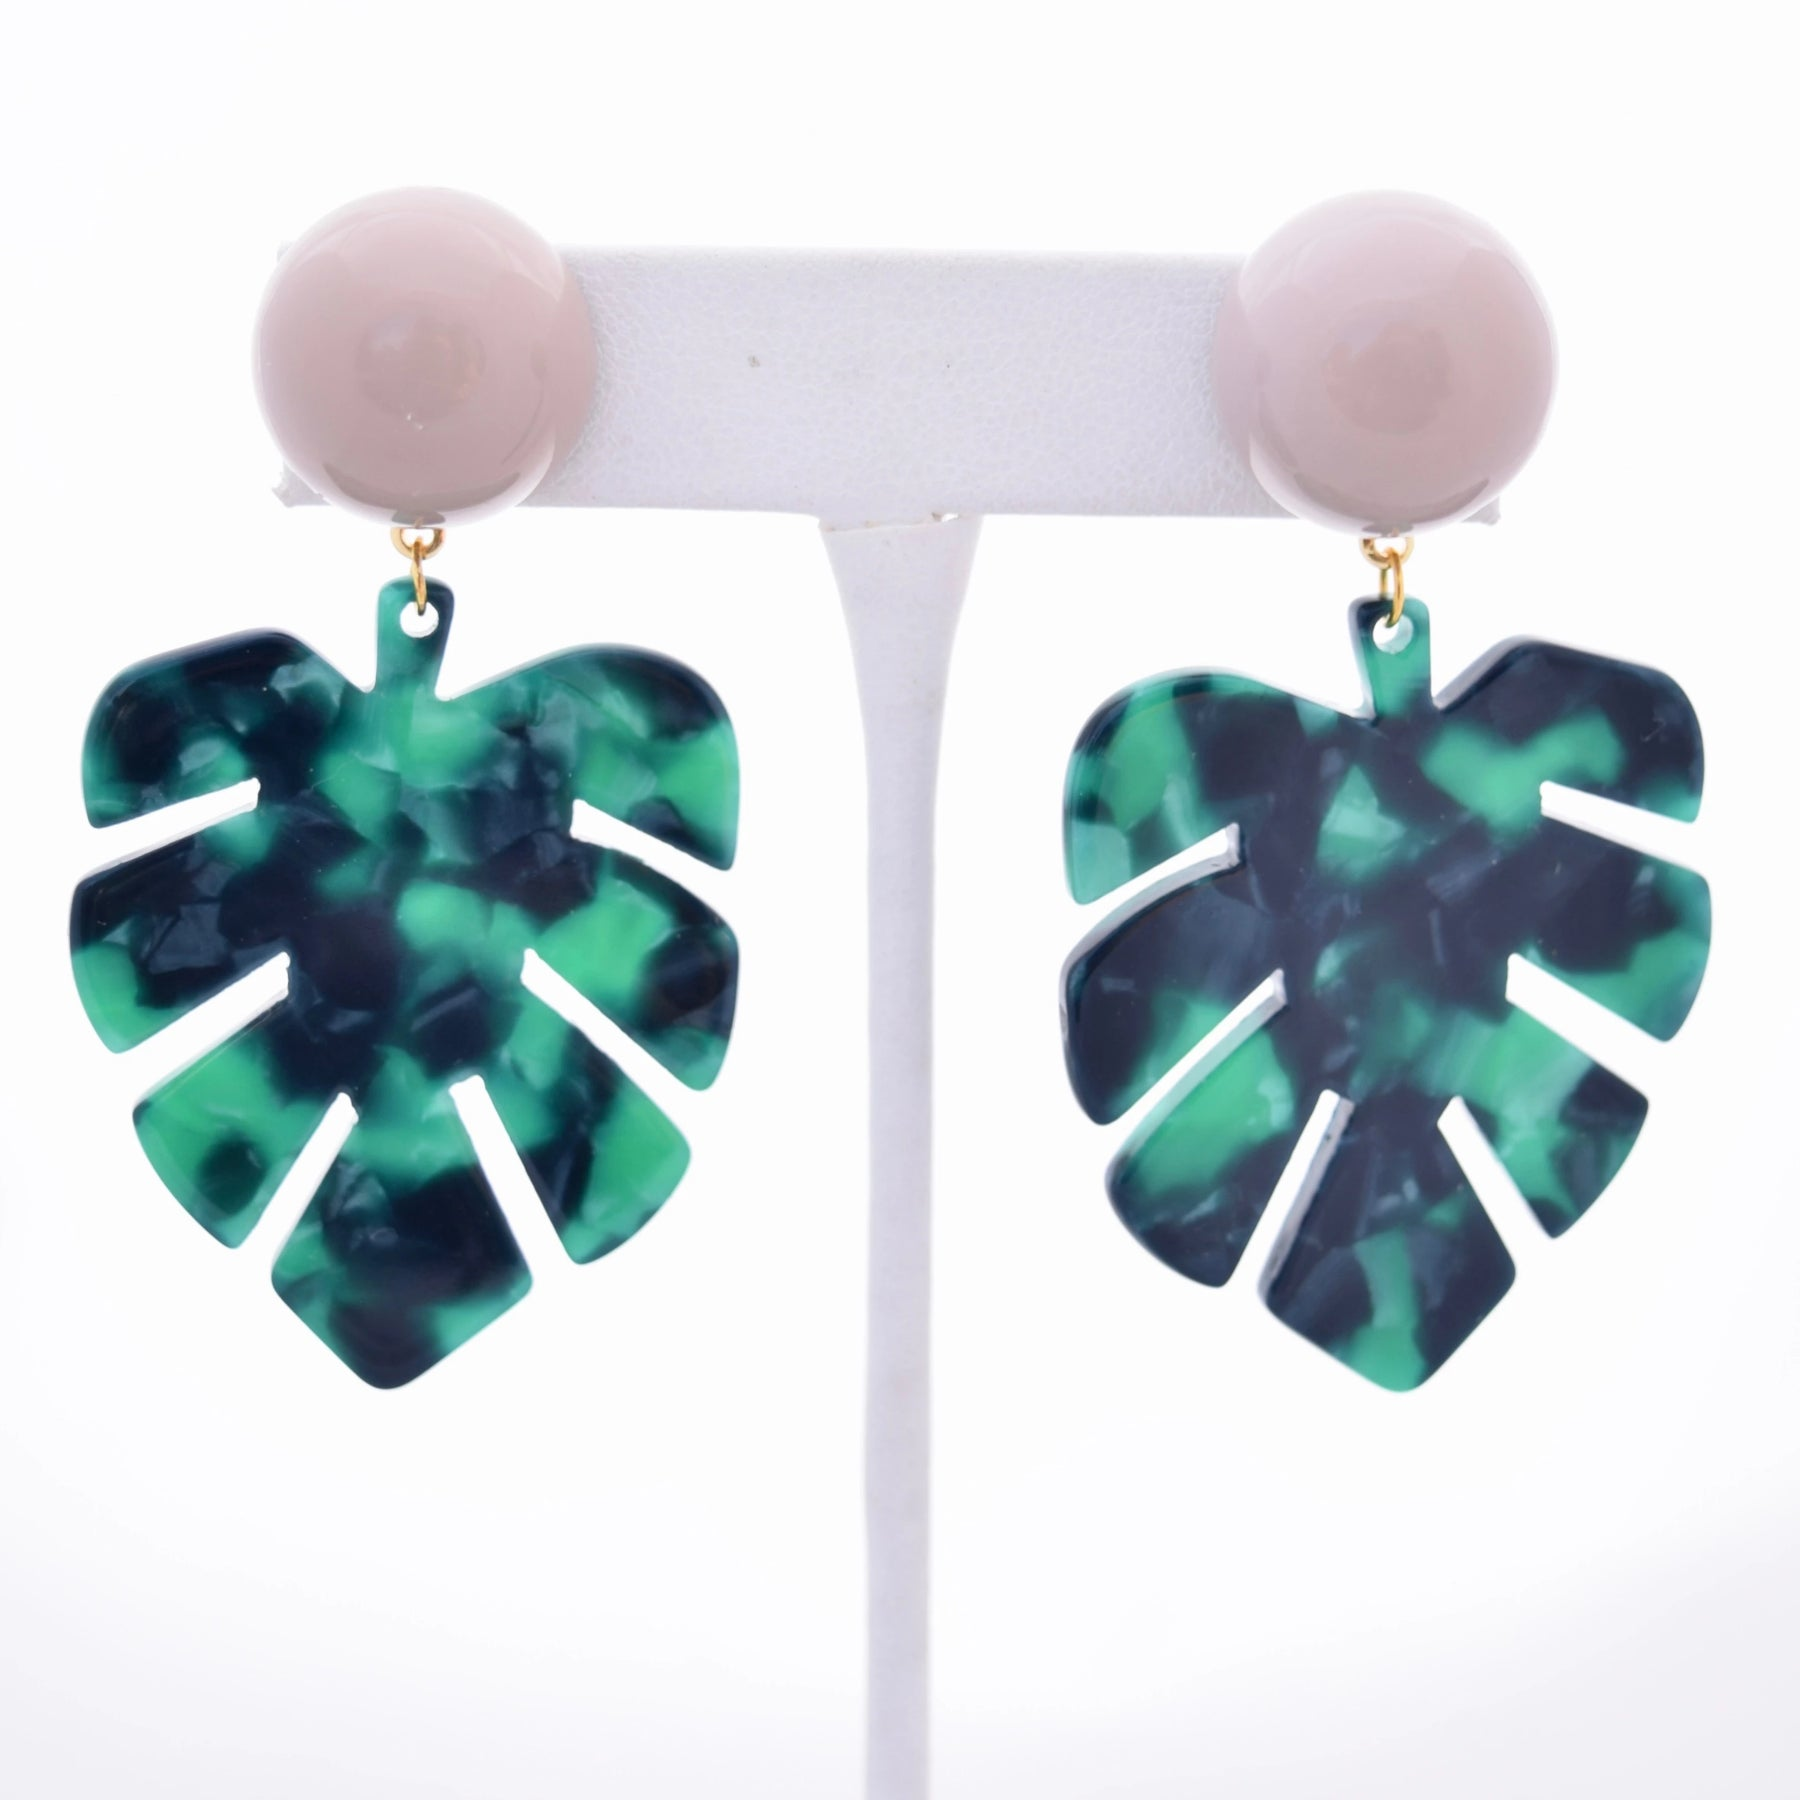 Jenn Green Palm Leaves Resin Earring